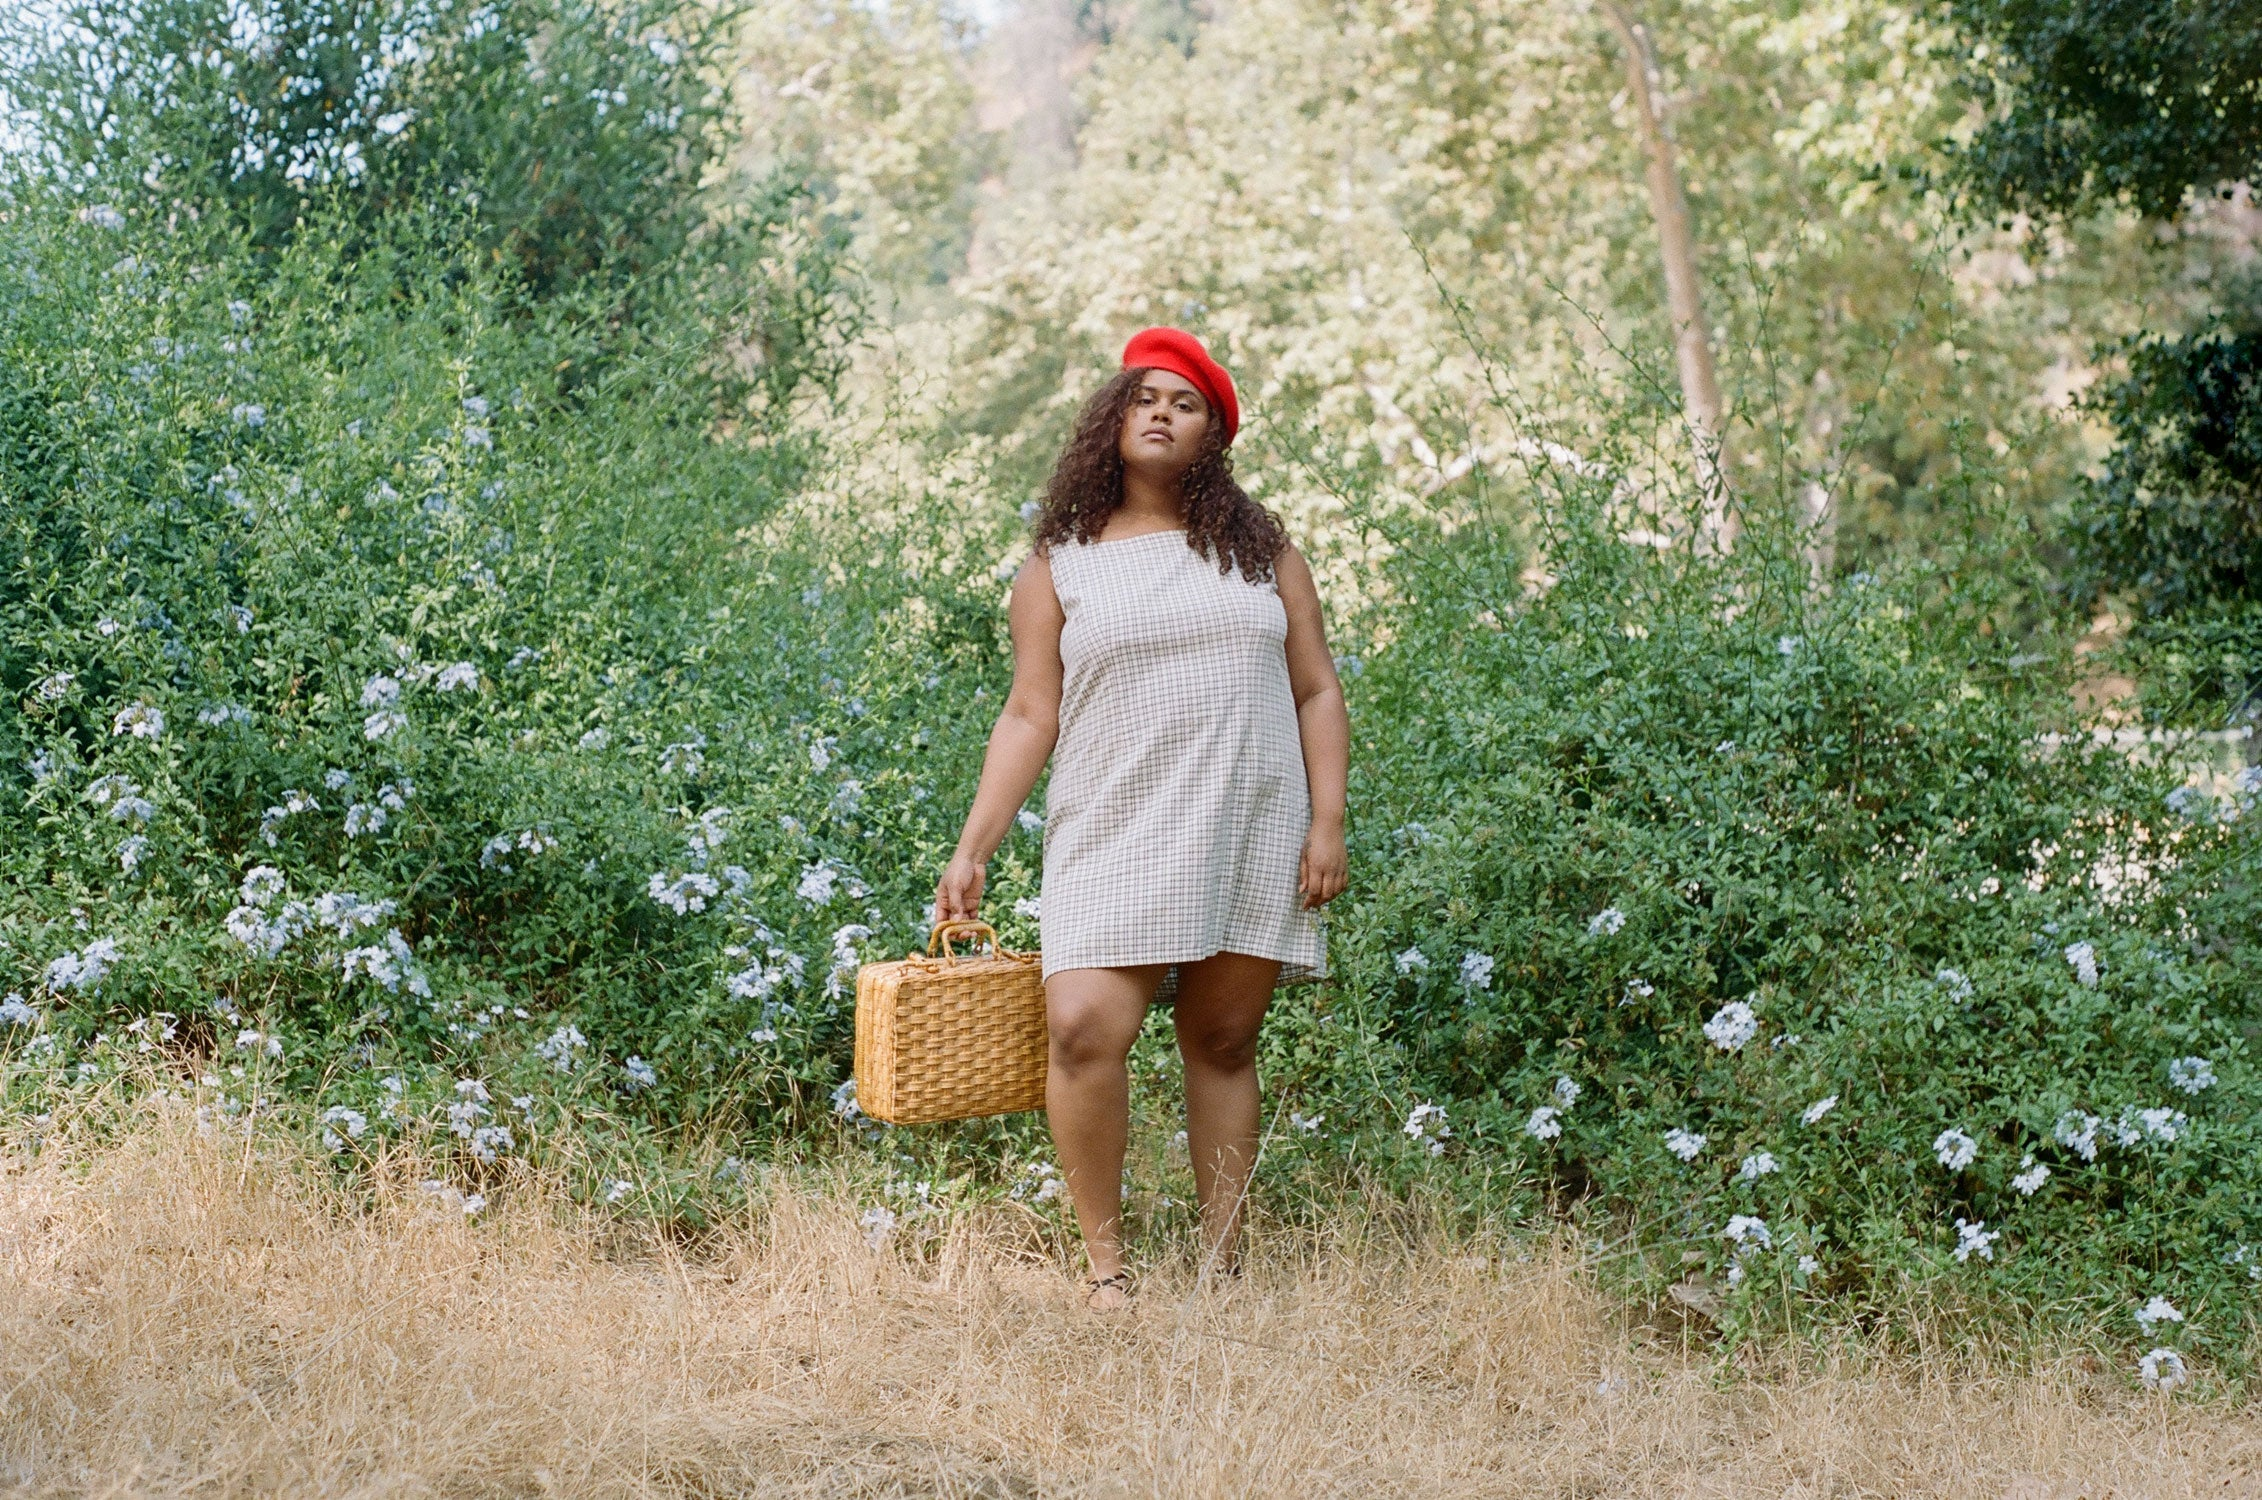 Plus size fashion model wearing vintage 1990s gingham dress with picnic basket